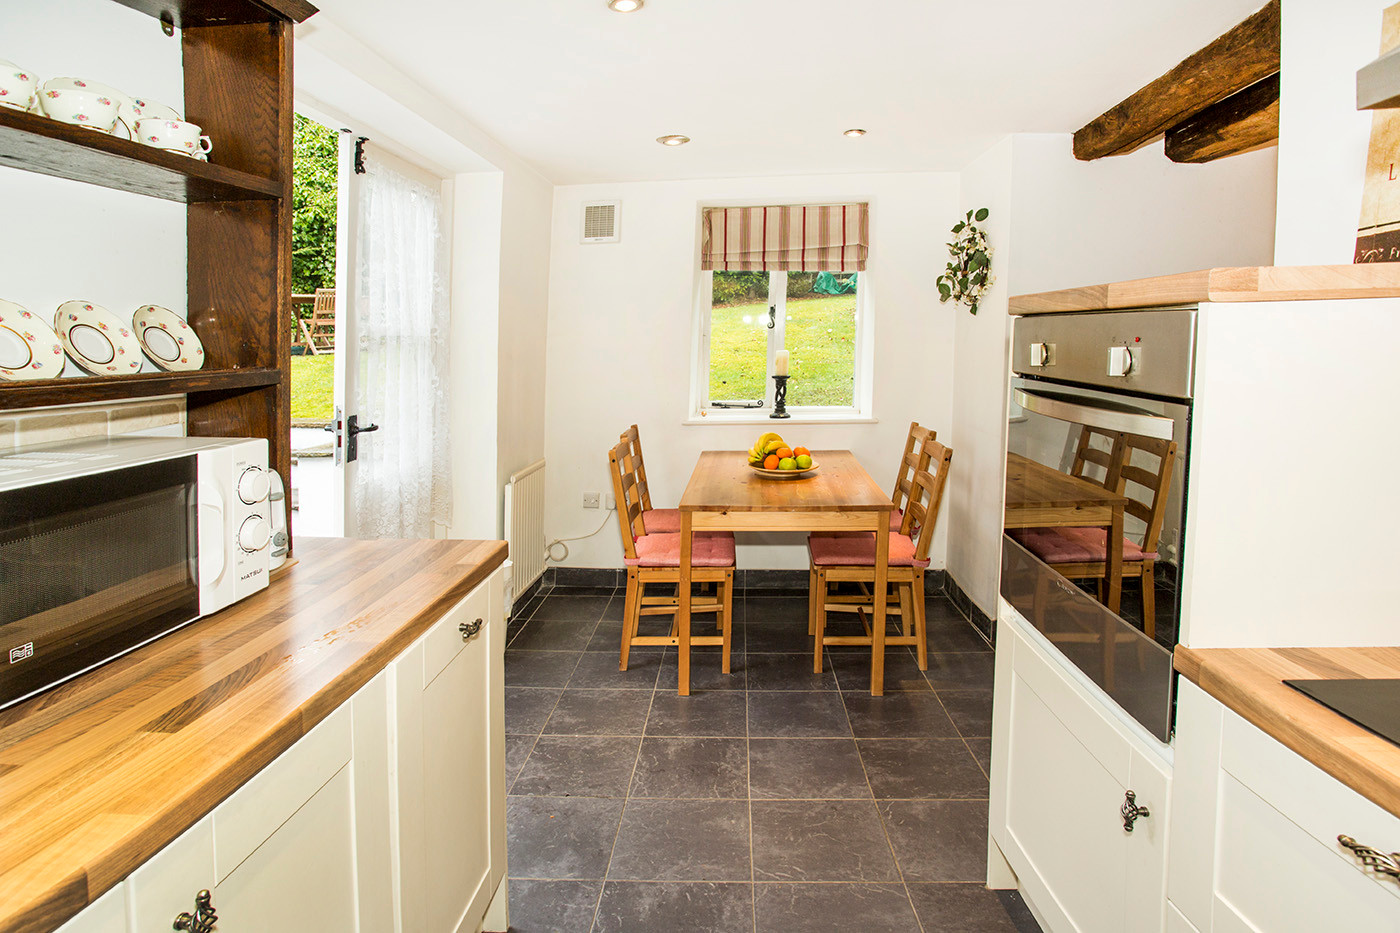 Contemporary country cottage kitchen